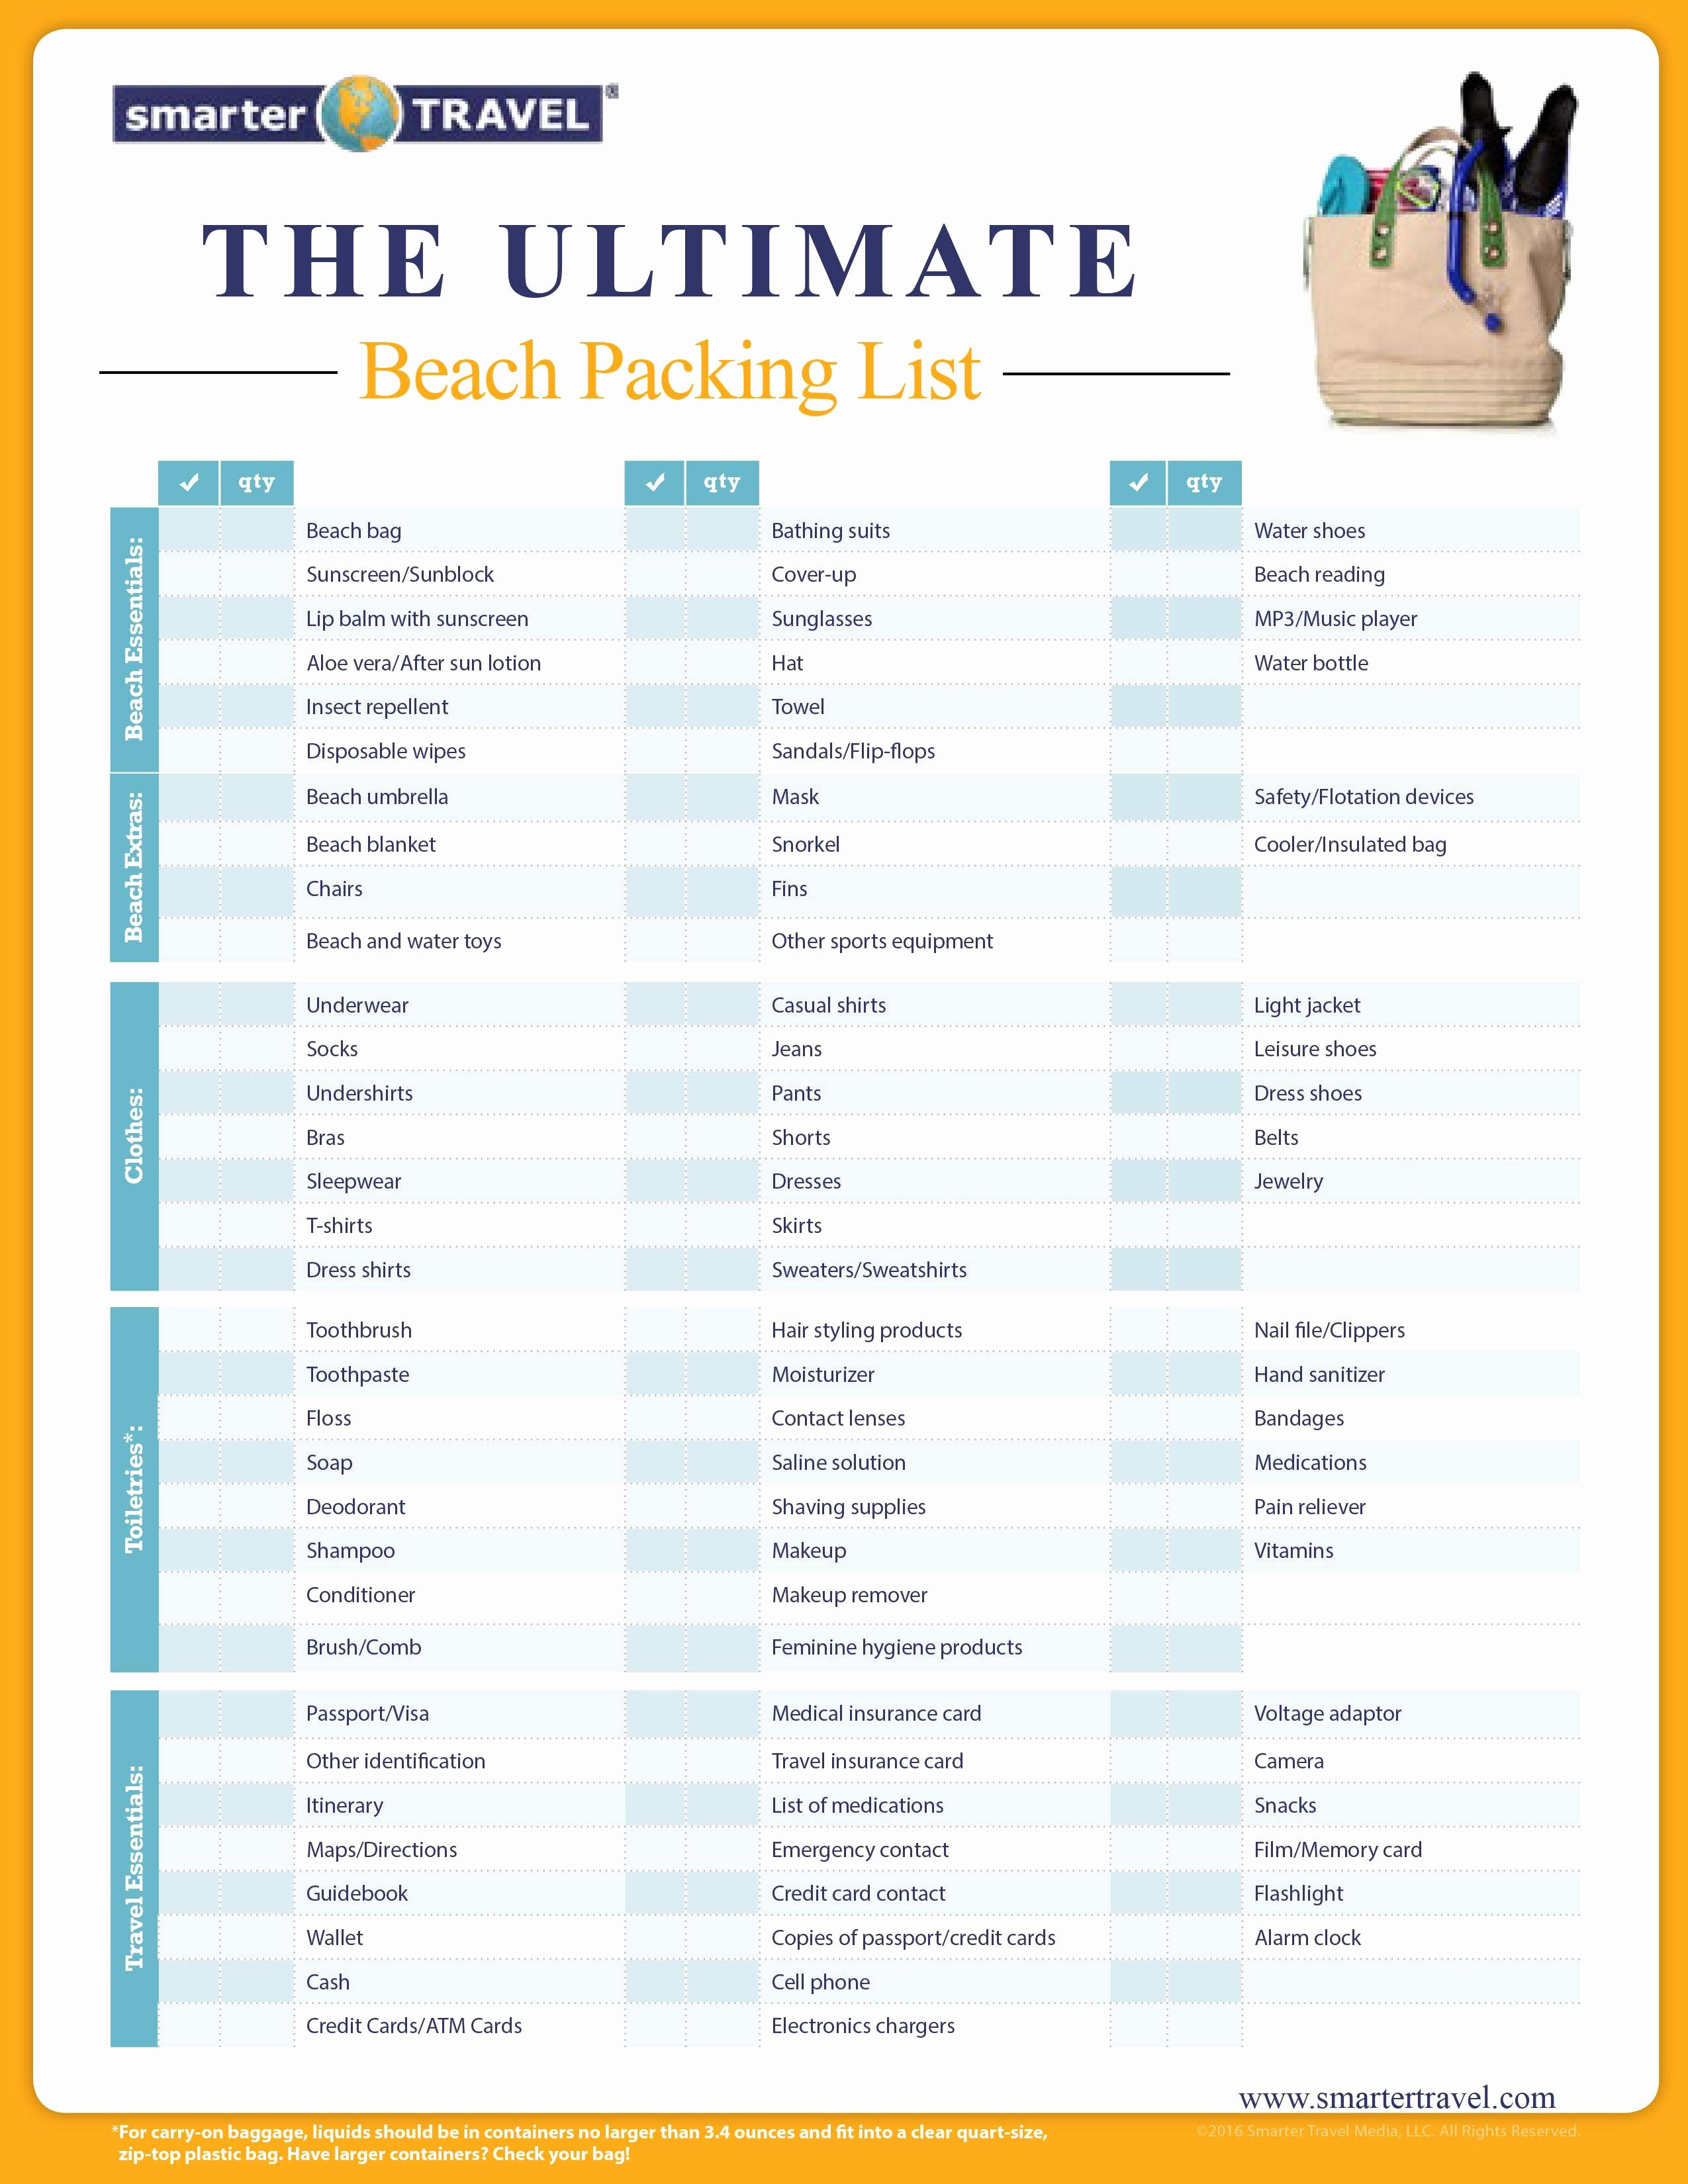 Vacation to Do List Template Inspirational the Essential Beach Packing List Travel